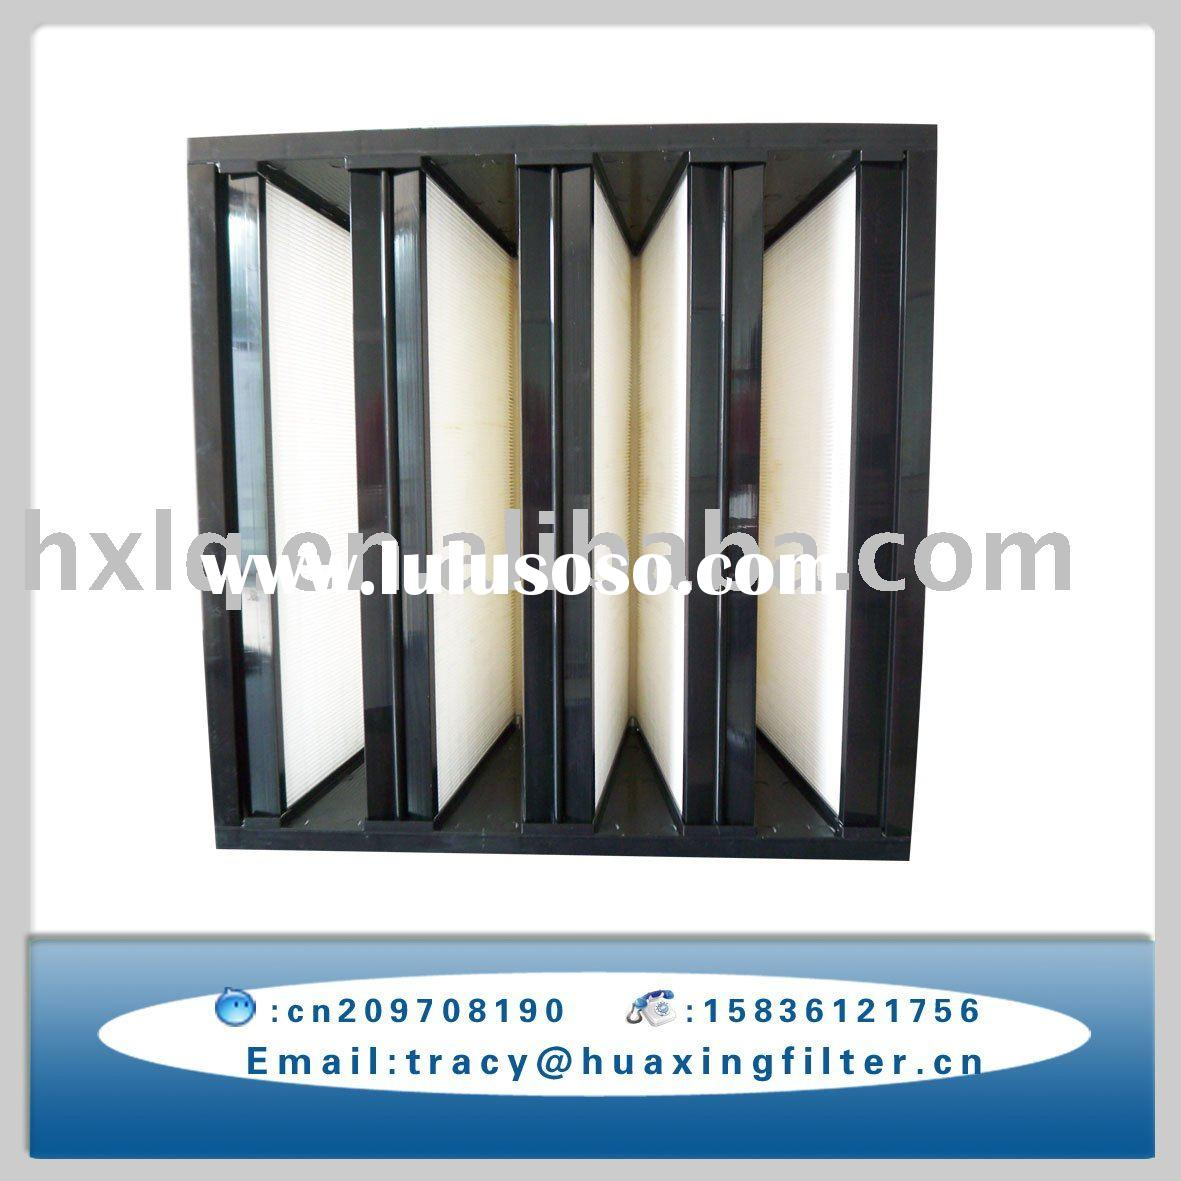 v-bank air pleated filter